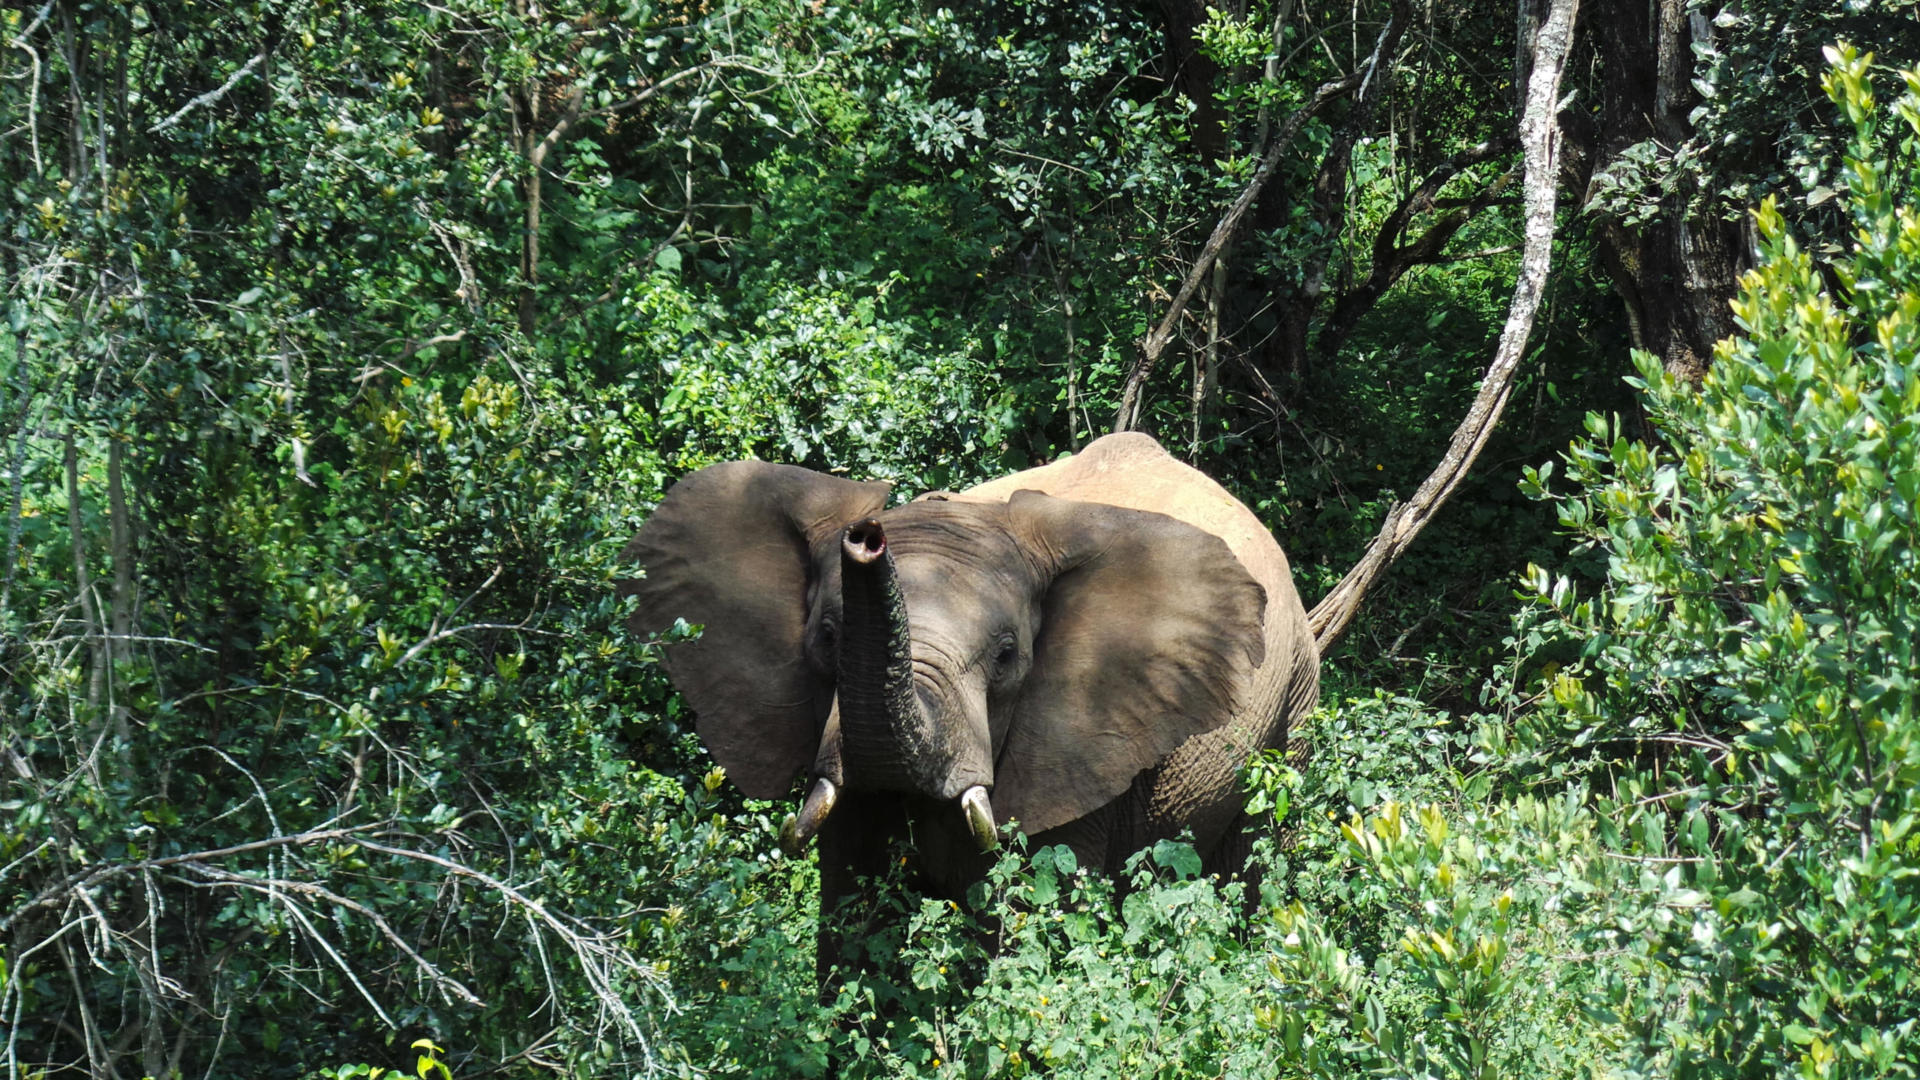 An elephant scenting the photographer on the canopy walkway